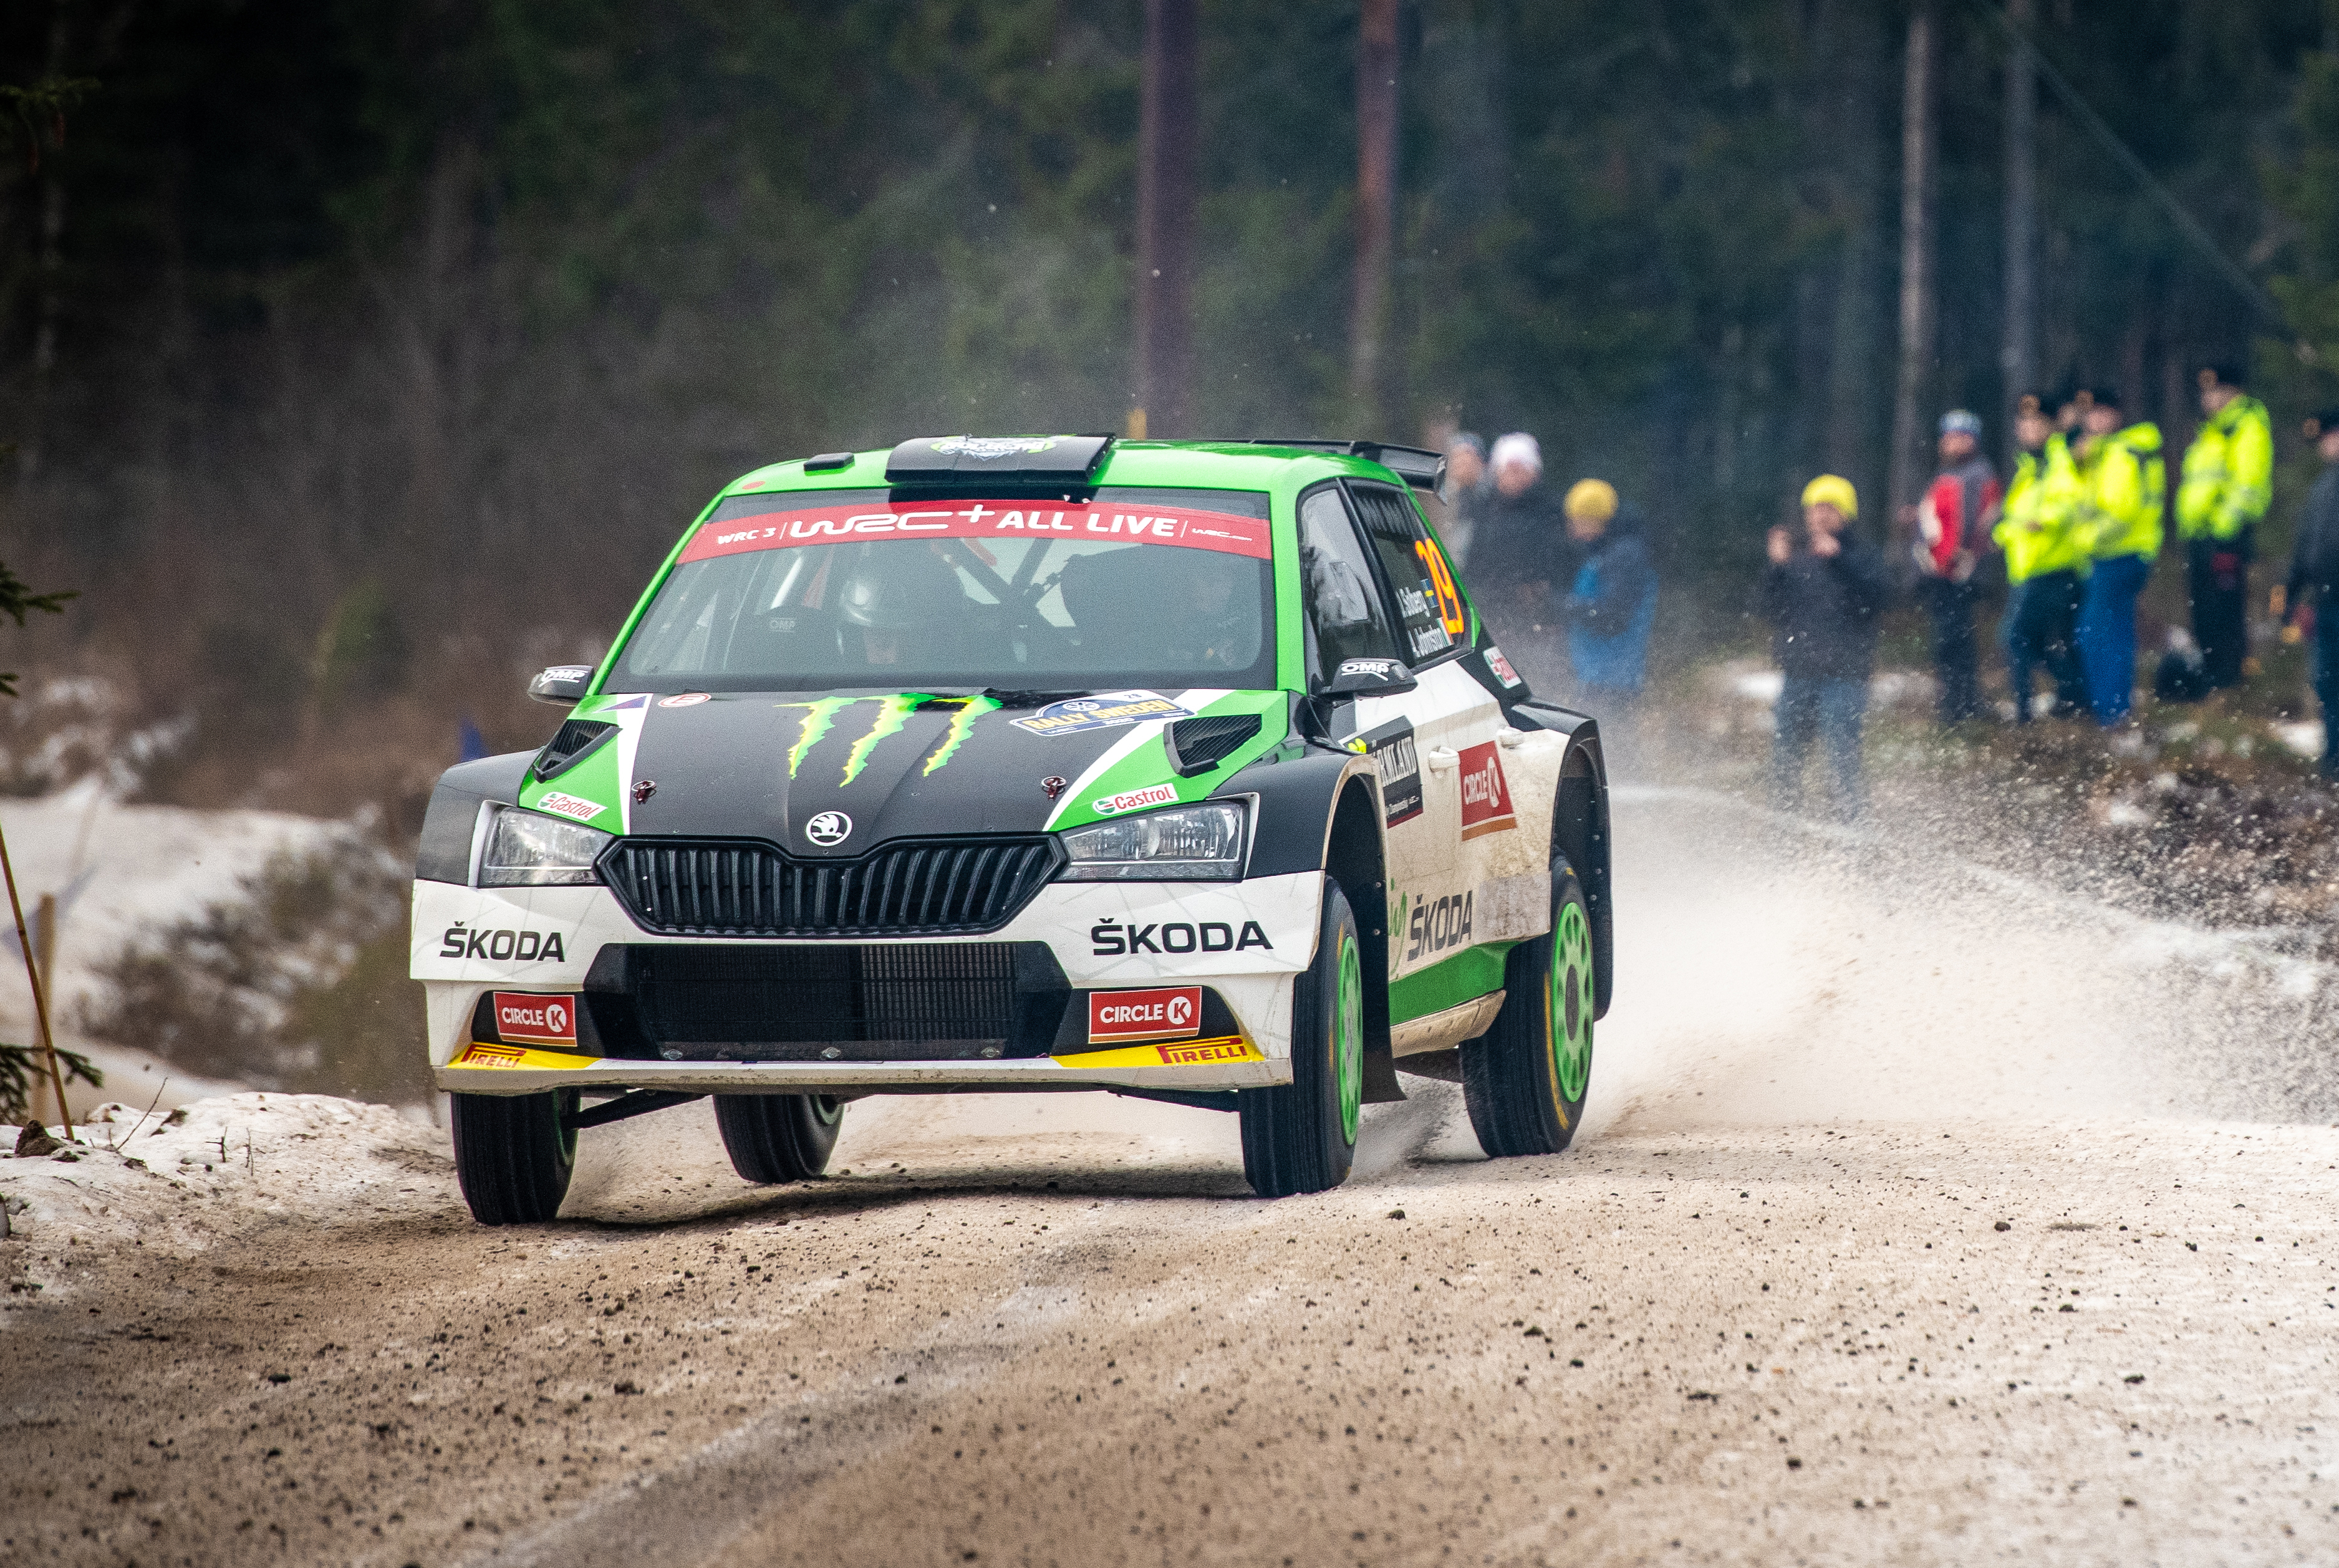 Technical innovations tested in motorsport made their way into road cars from SKODA - Image 2